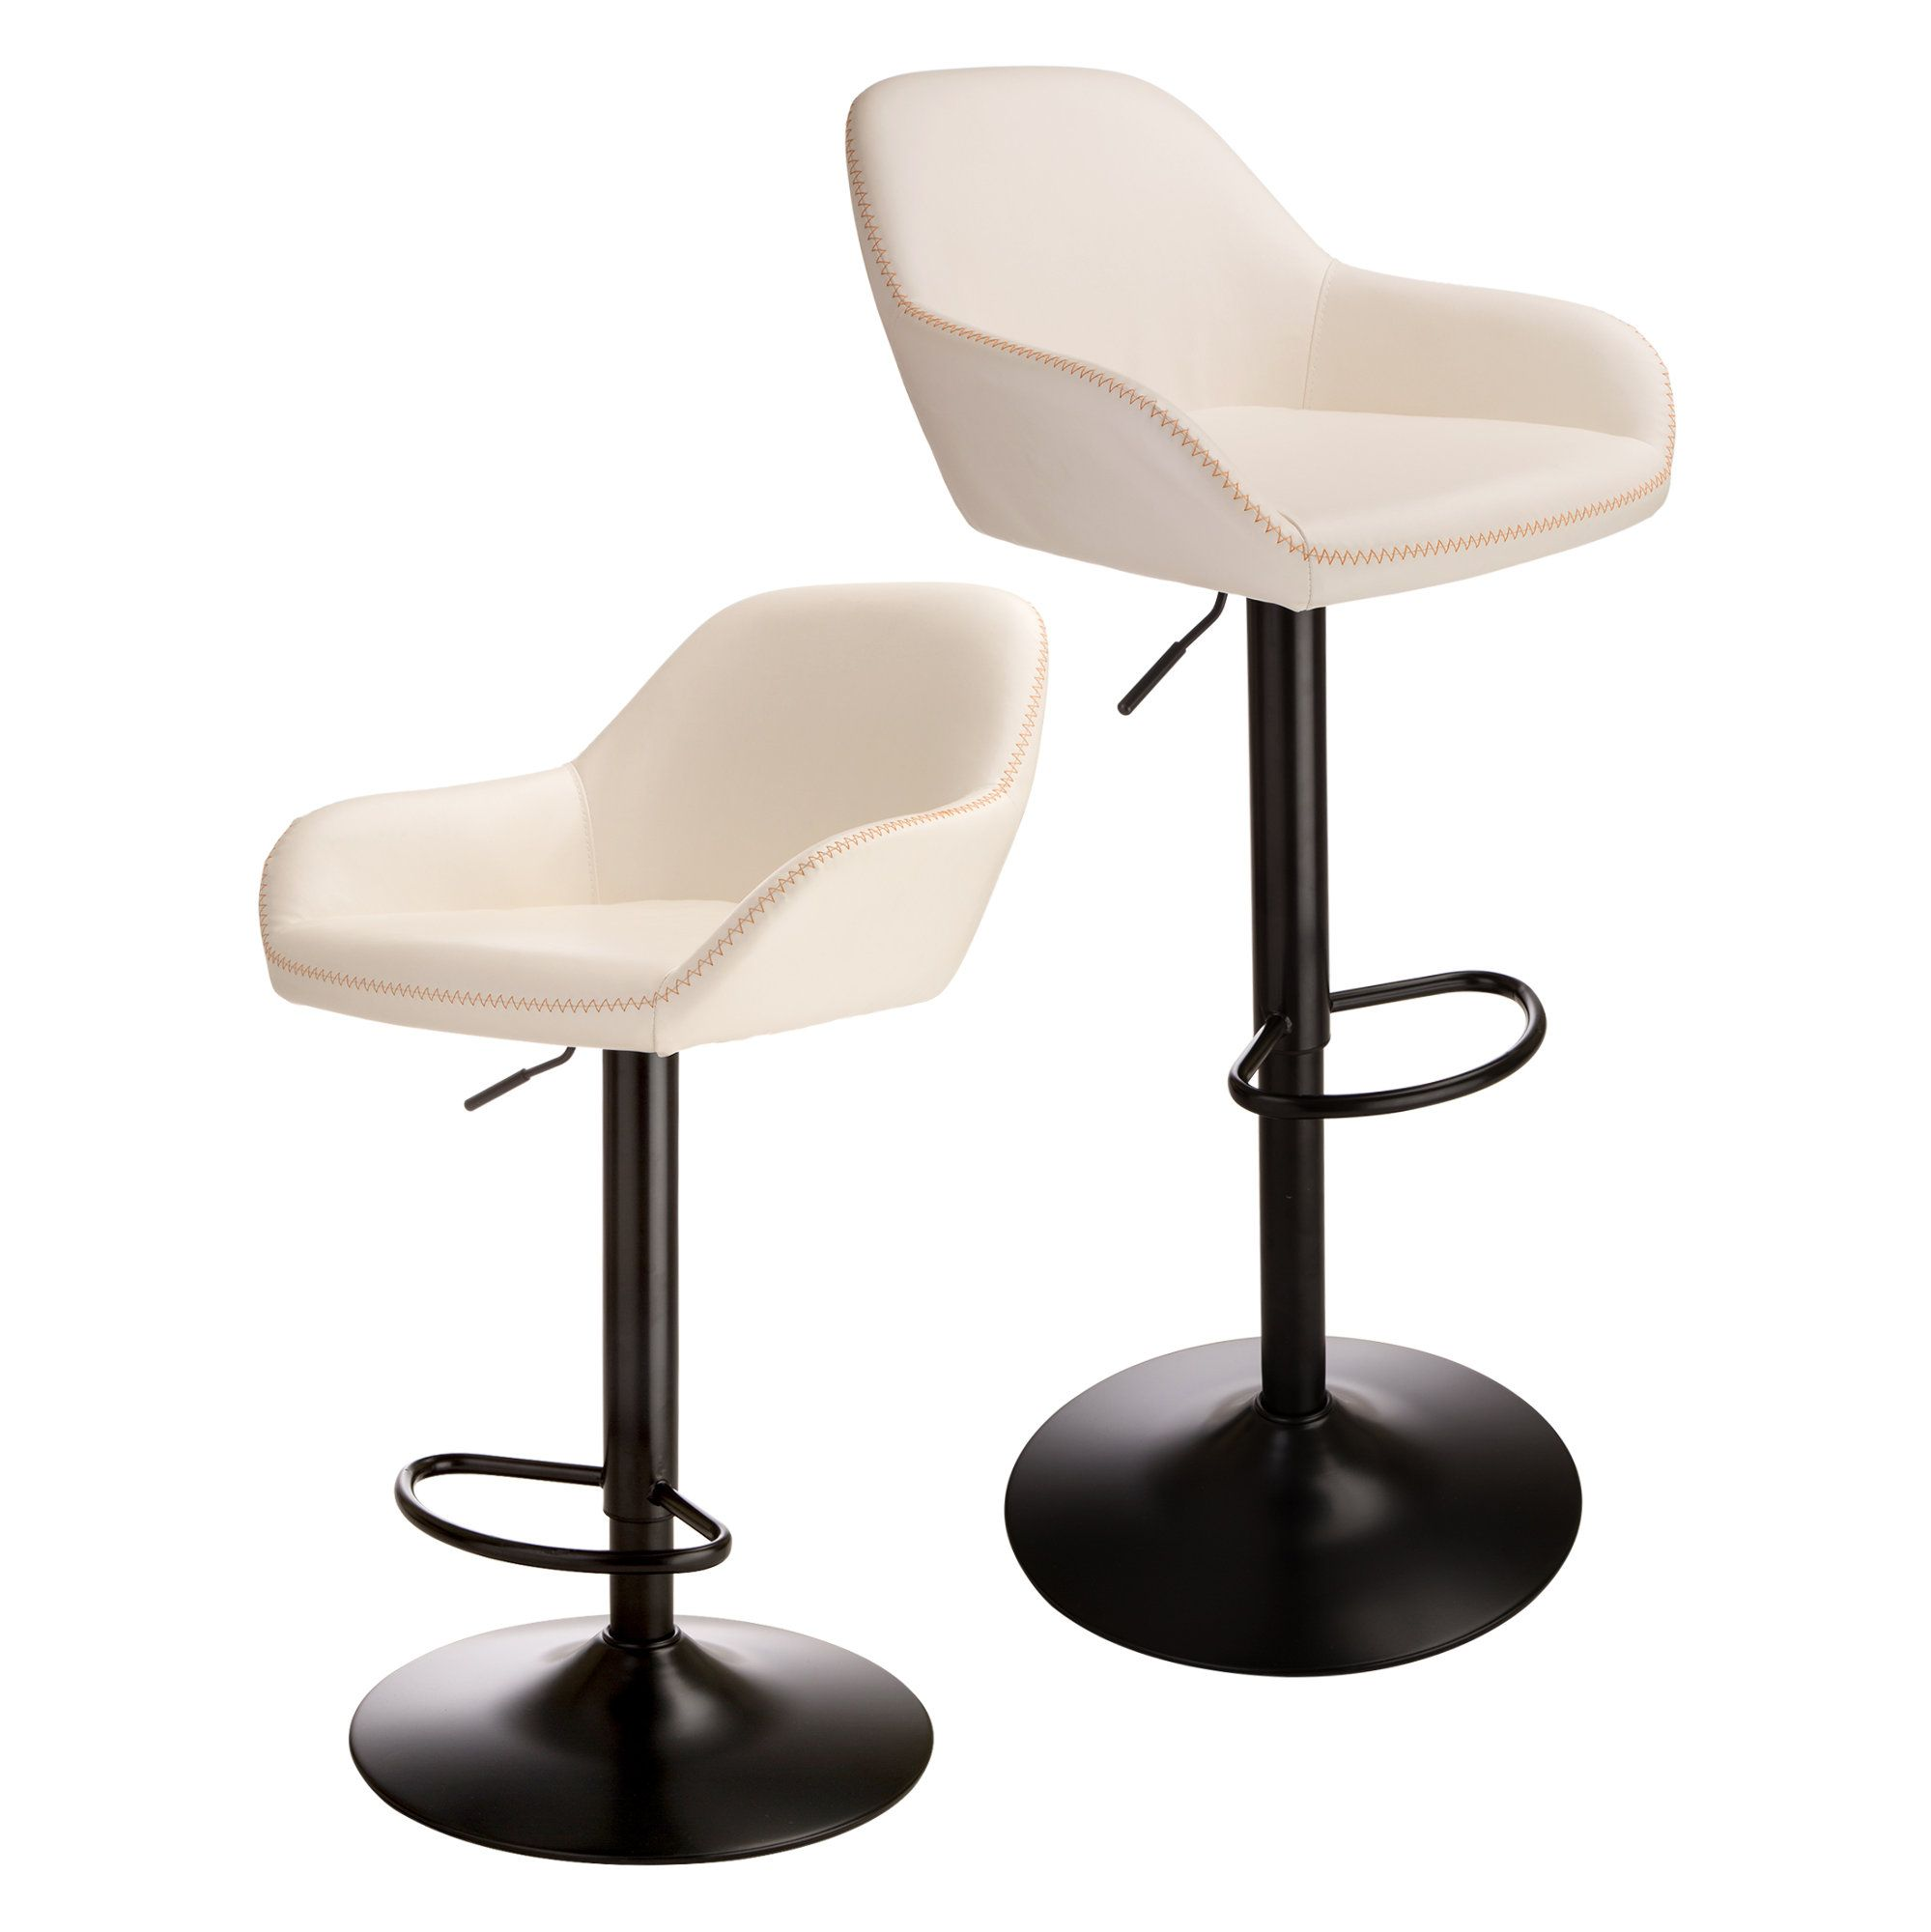 Glitzhome Mid Century Bar Stool With Back Support Adjustable Leather Counter Height Home Swivel Bar Stools D In 2020 Swivel Bar Stools Bar Stools Adjustable Bar Stools